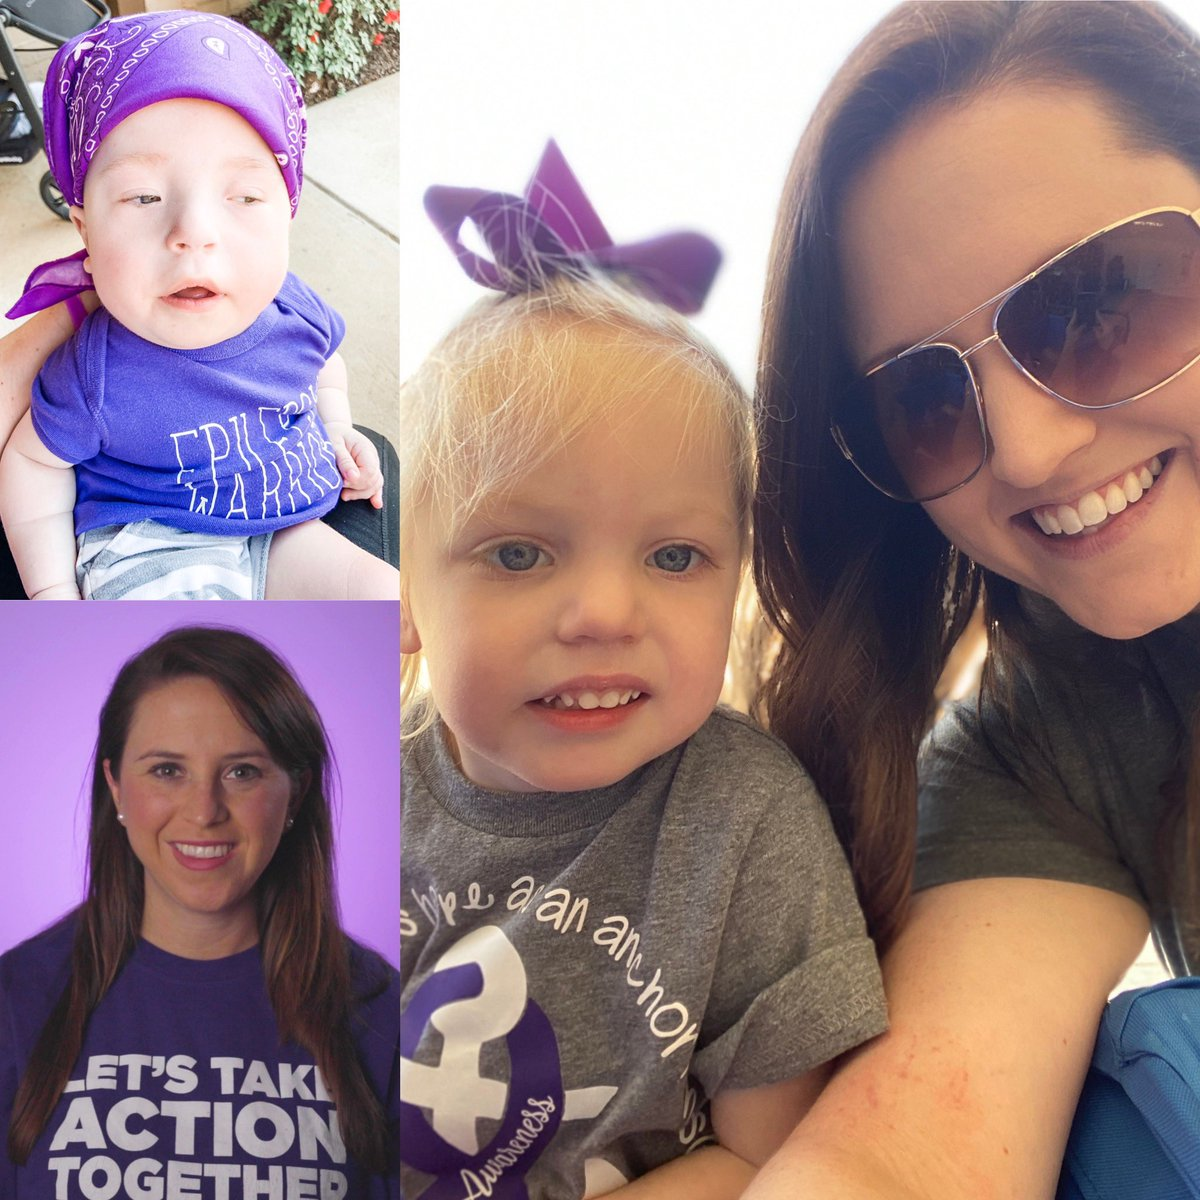 Way to rock the purple wear today #Alabama! #EpilepsyDay 💜 #EndEpilepsy https://t.co/ka688V2feY